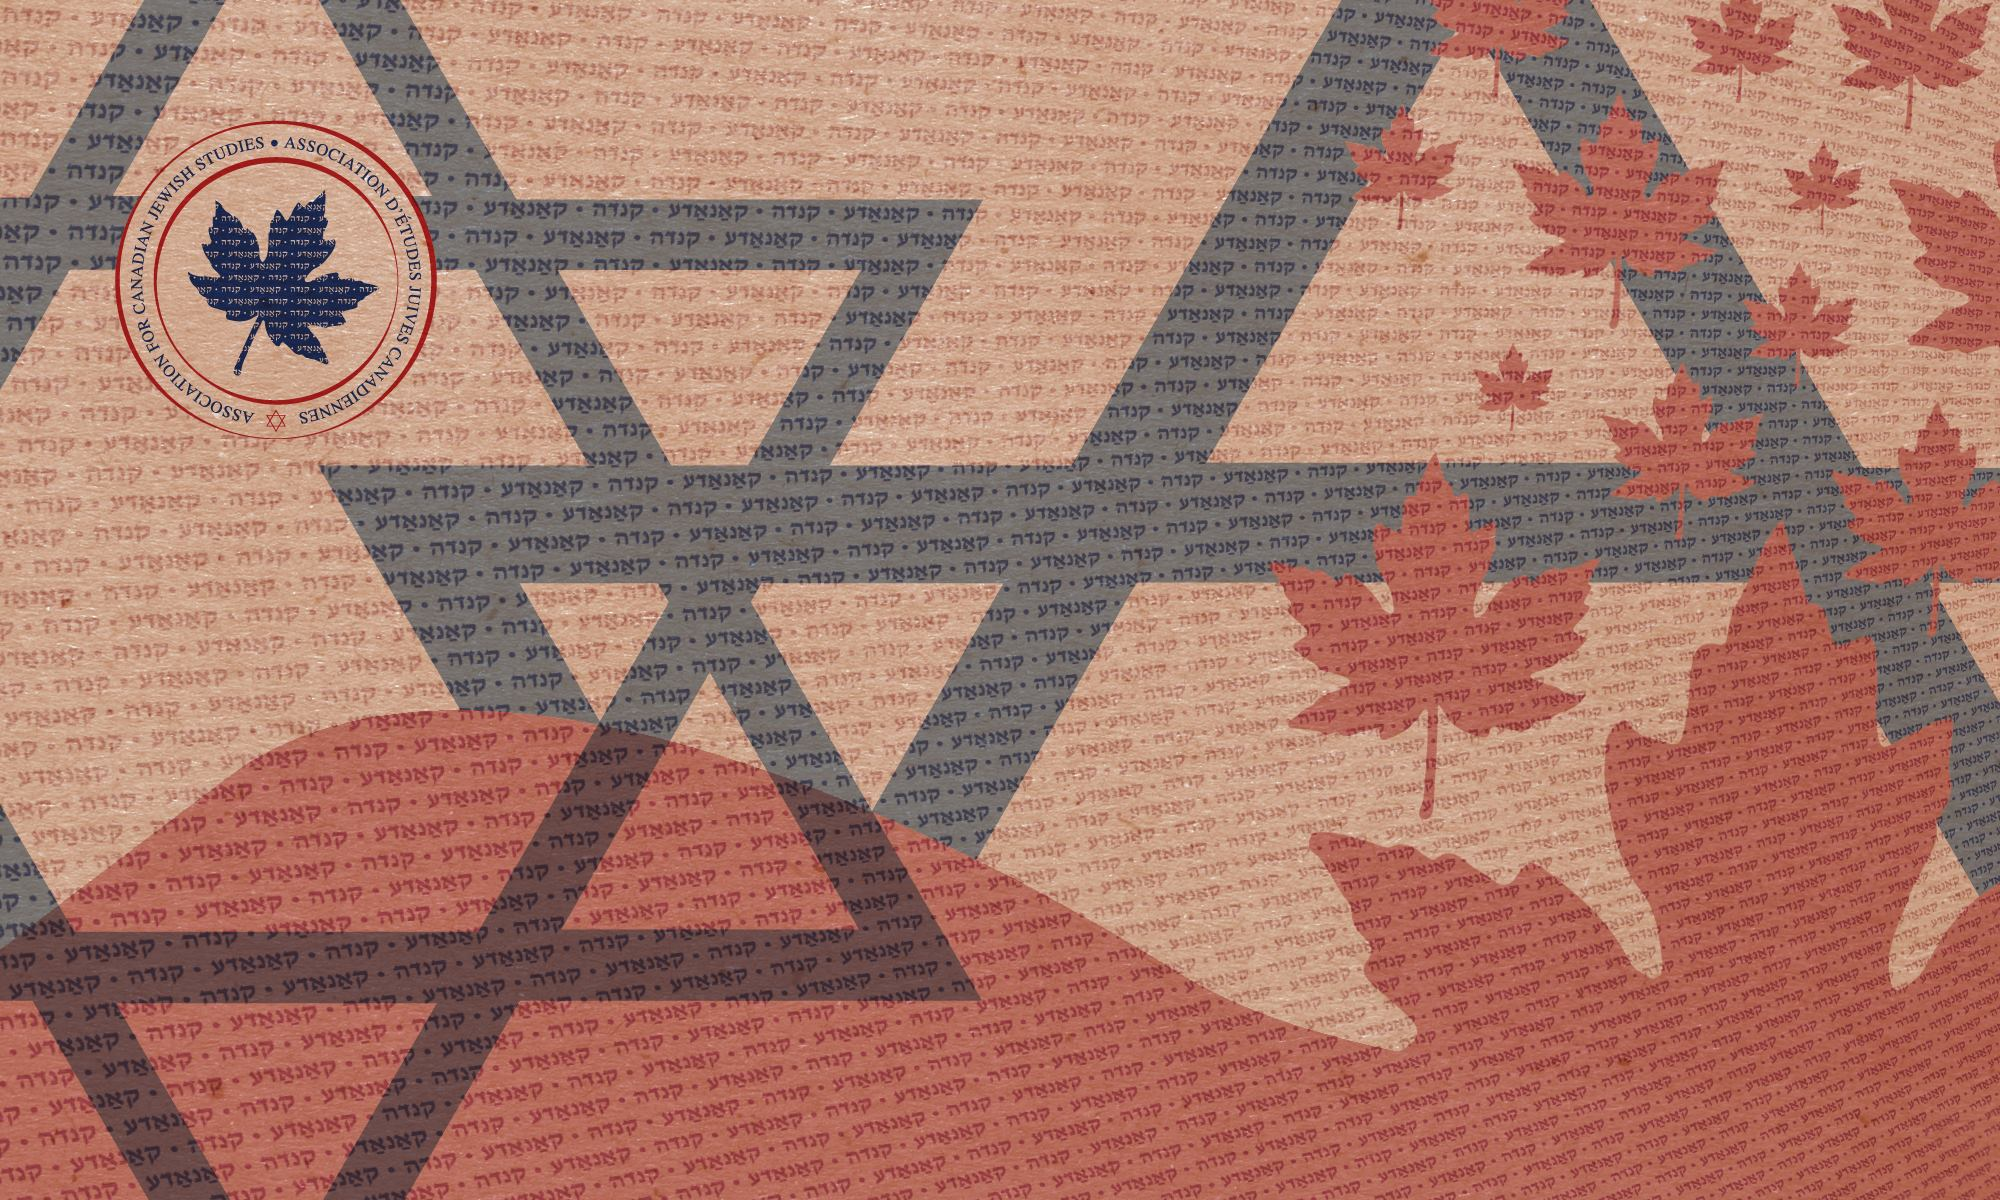 Association for Canadian Jewish Studies / Association d'études juives canadiennes